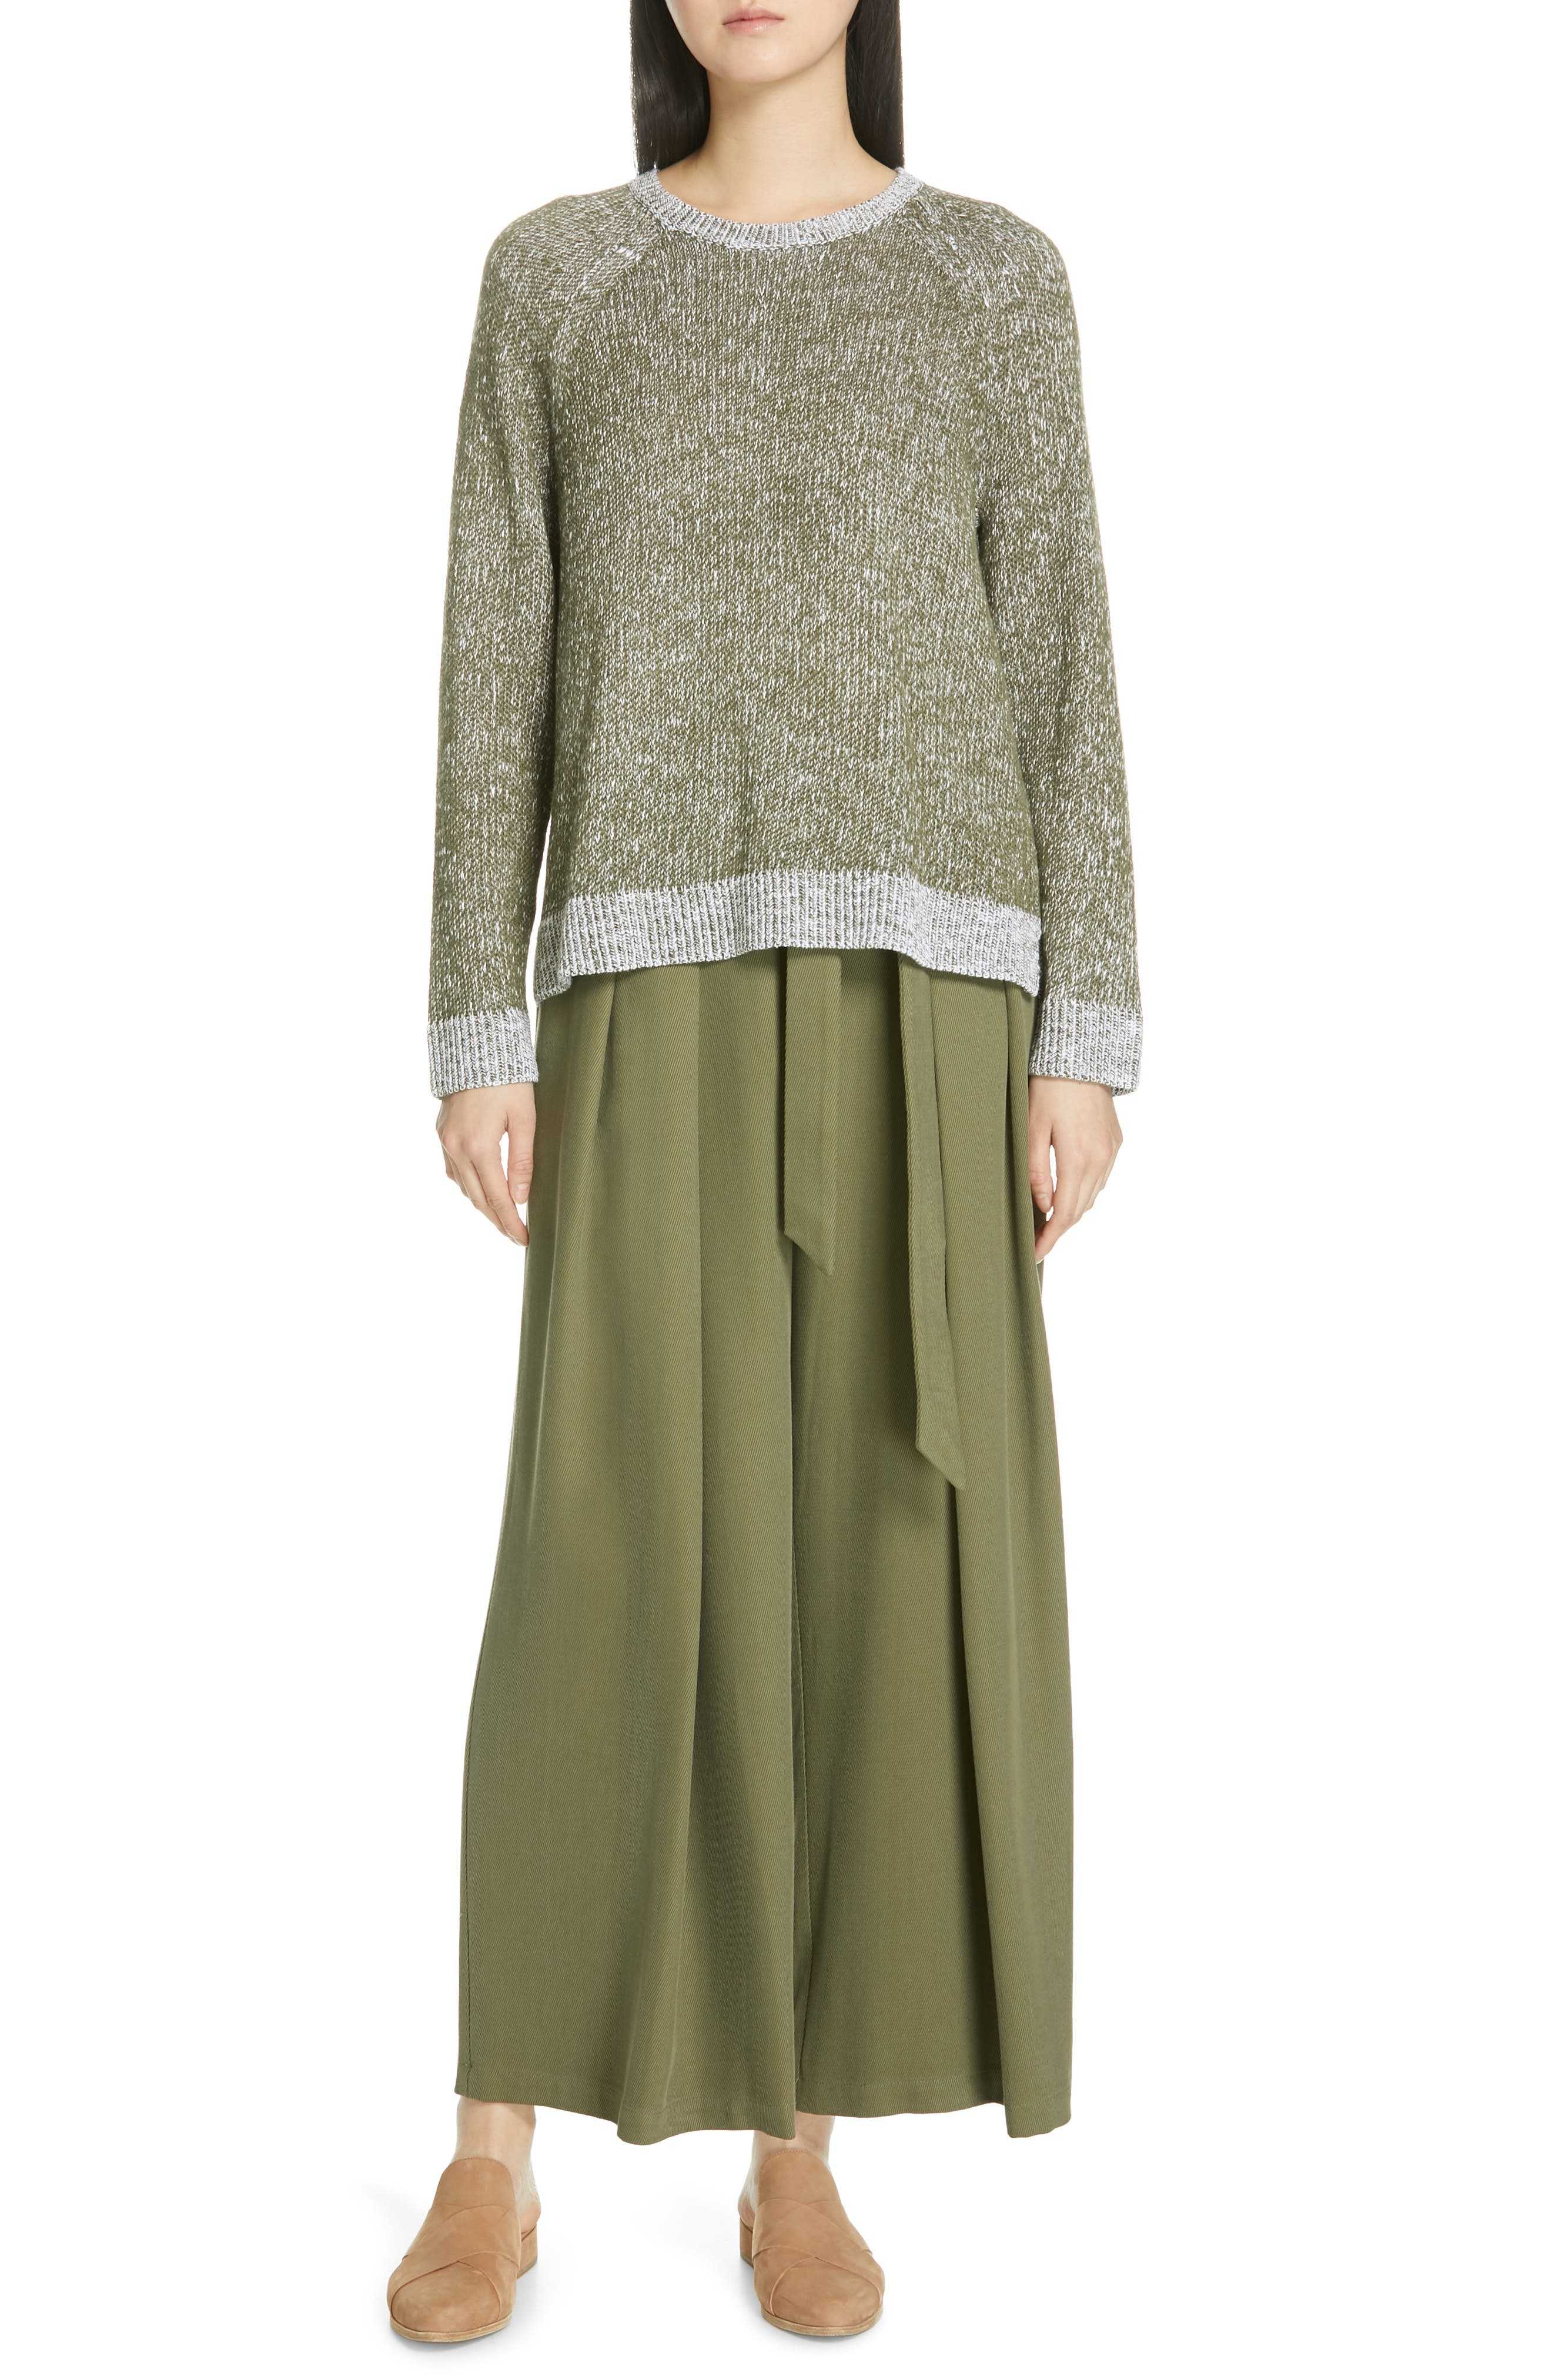 EILEEN FISHER, Belted Wide Leg Pants, Alternate thumbnail 8, color, 301